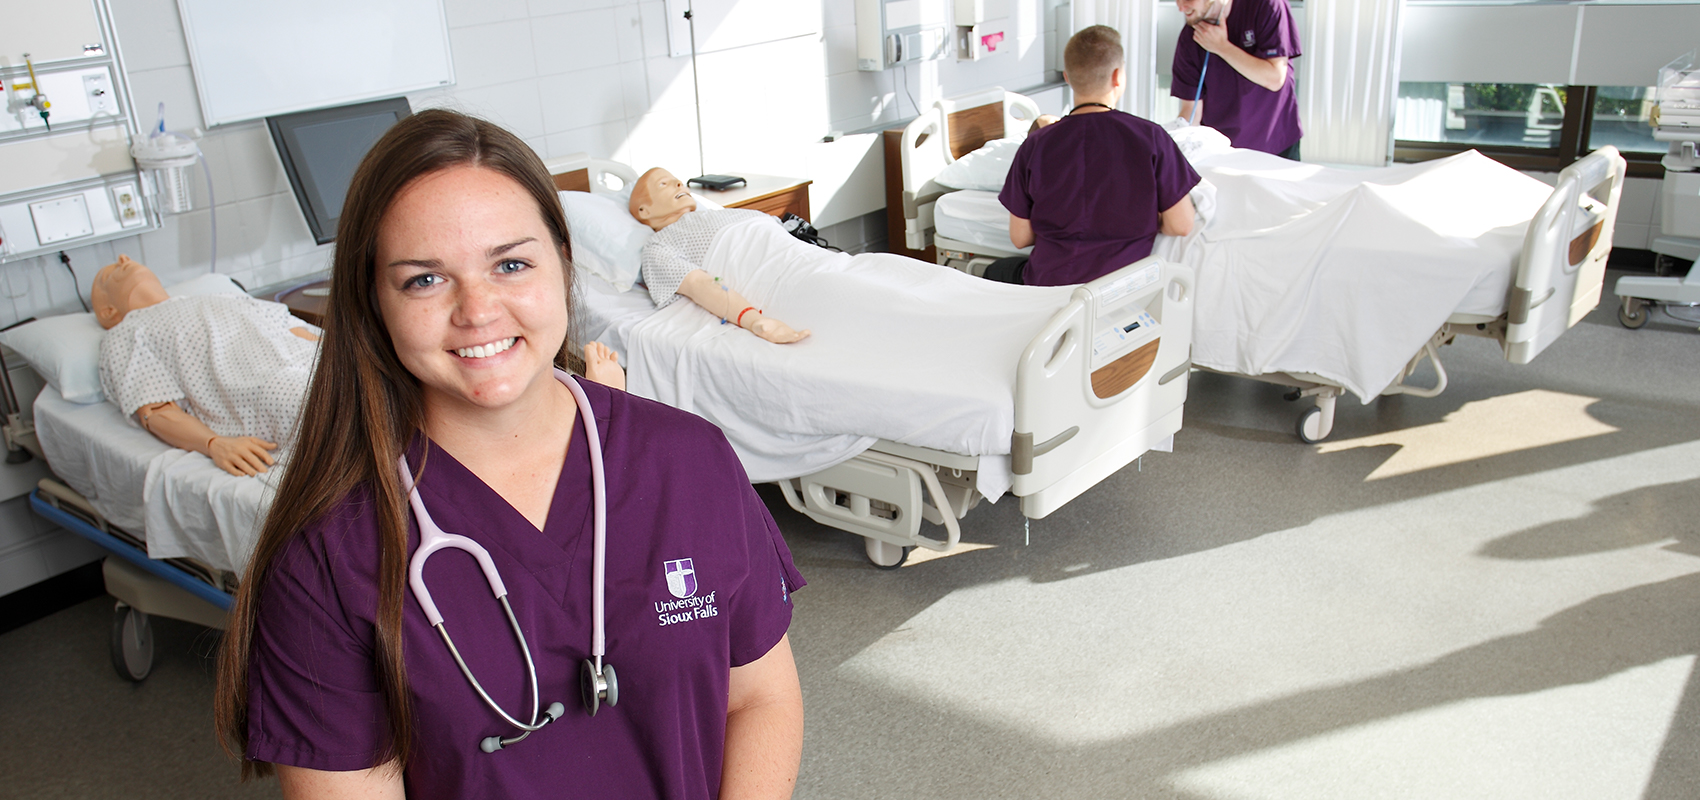 USF nursing graduate working as an RN at Avera McKennan Hospital in Sioux Falls.